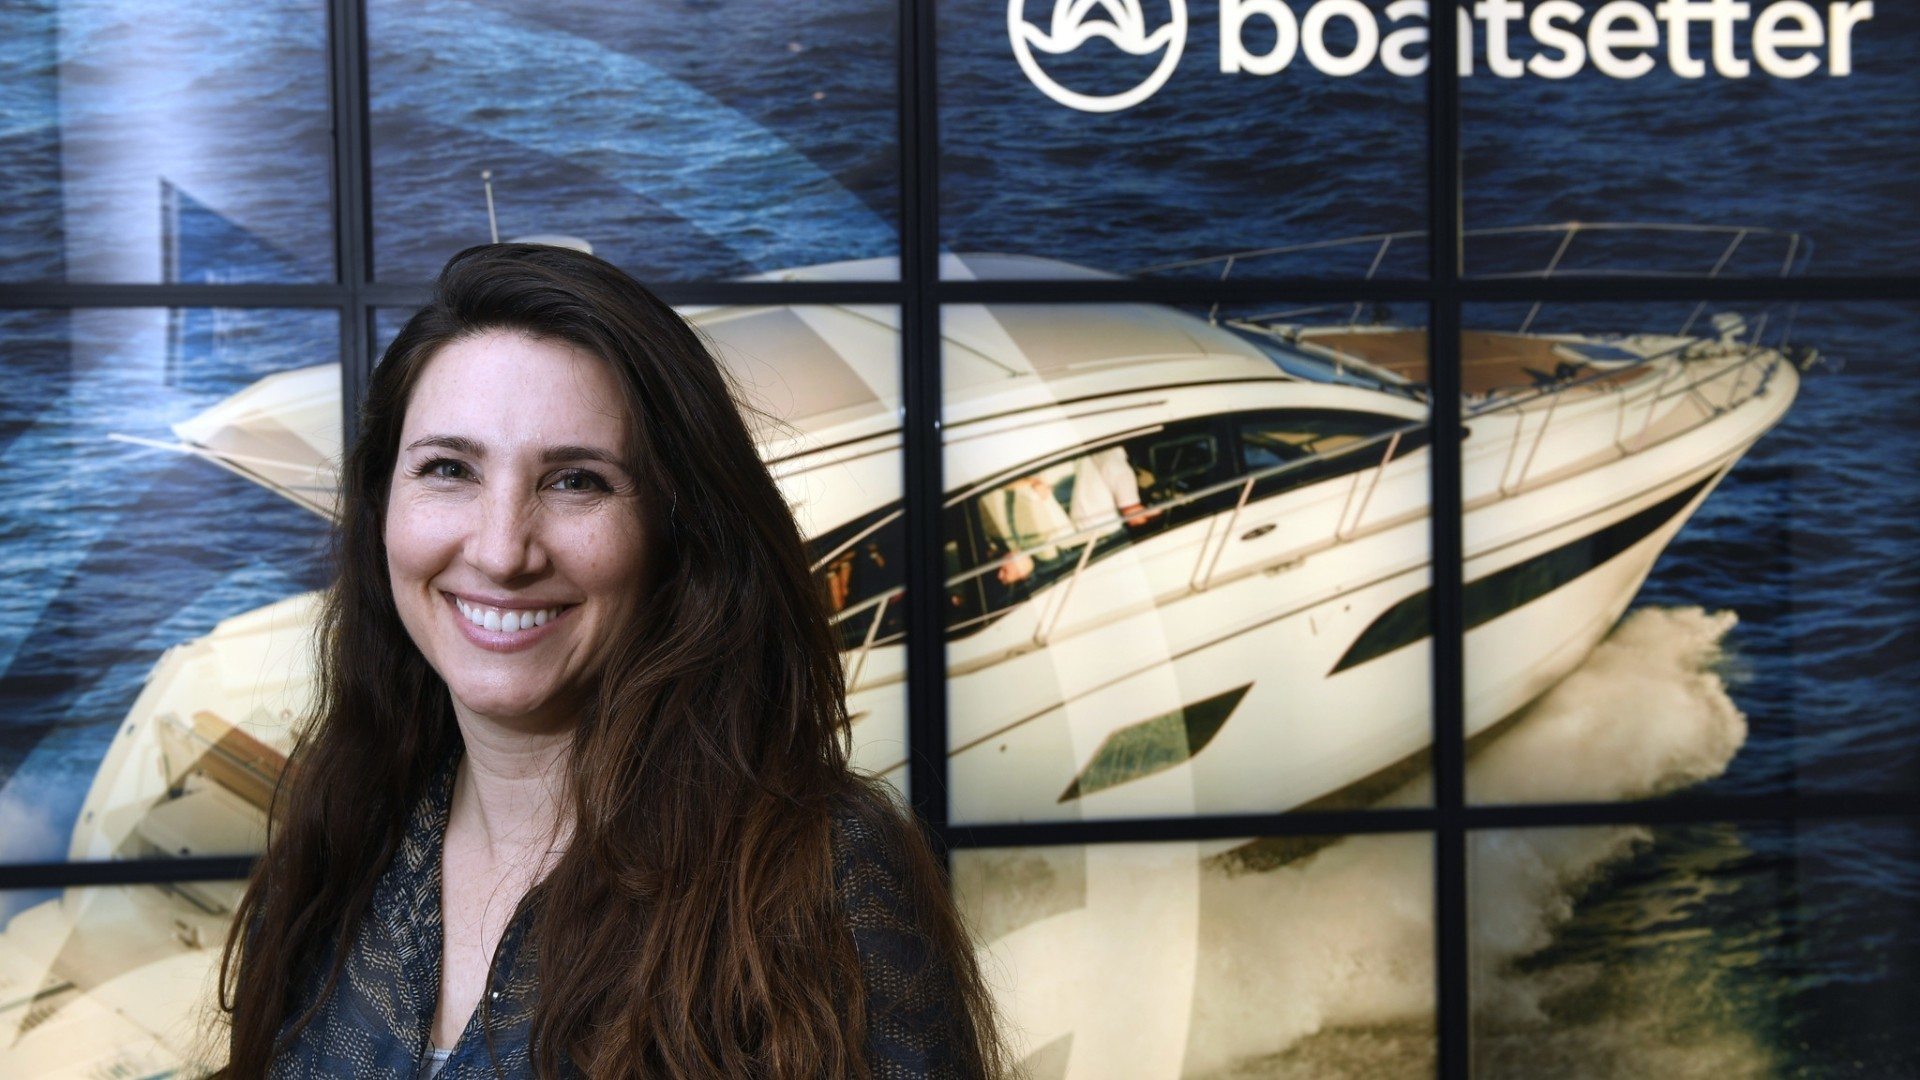 Boatsetter the Airbnb for boats - Orlando Sentinel